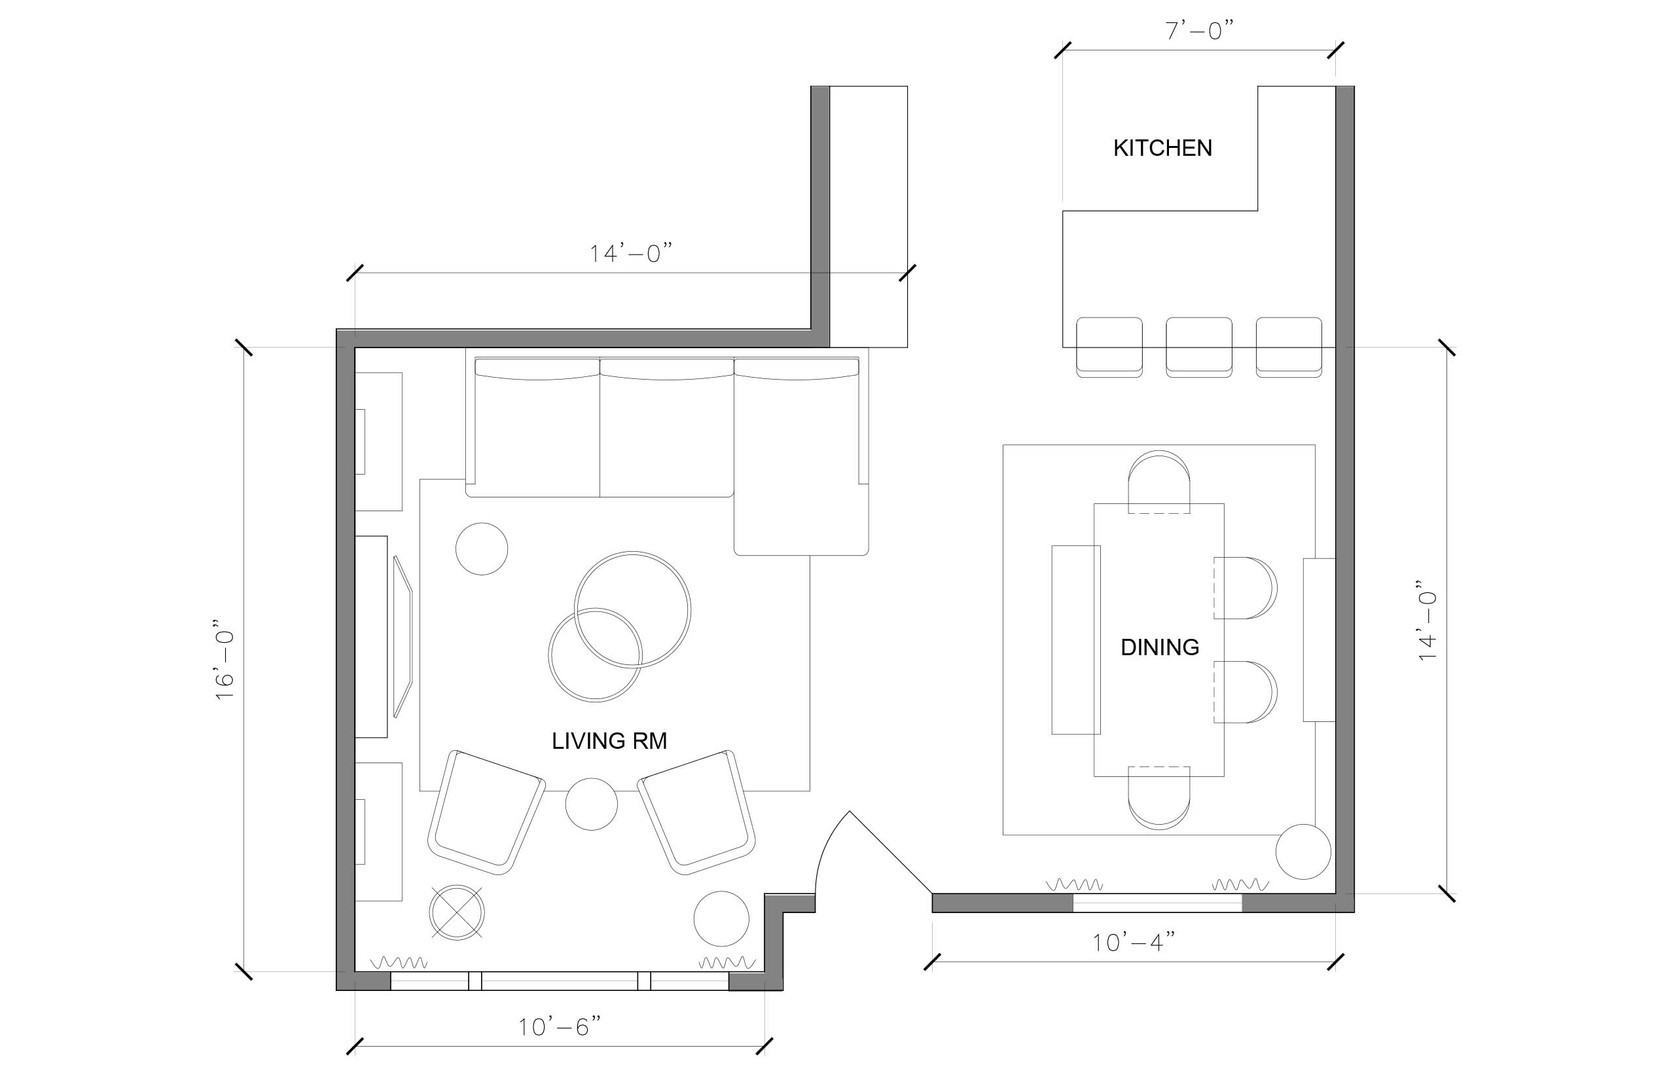 vdc Edgy Dining floor plan.jpg